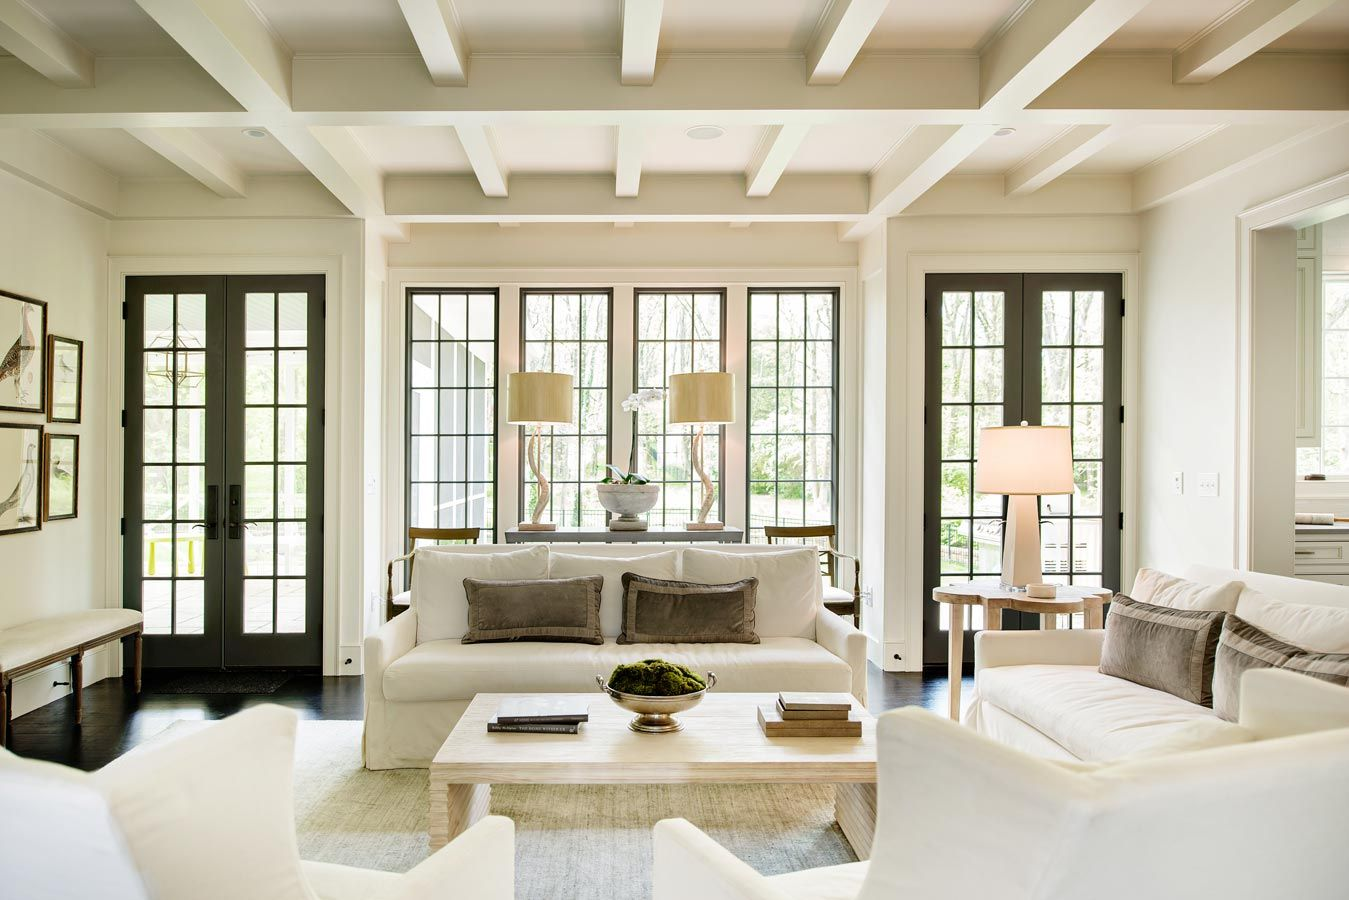 Marvin Swinging French Doors Made A Mark On This 2015 Marvin Architects Challenge Winner Get More Inspiration From Home Gorgeous Houses English Country House